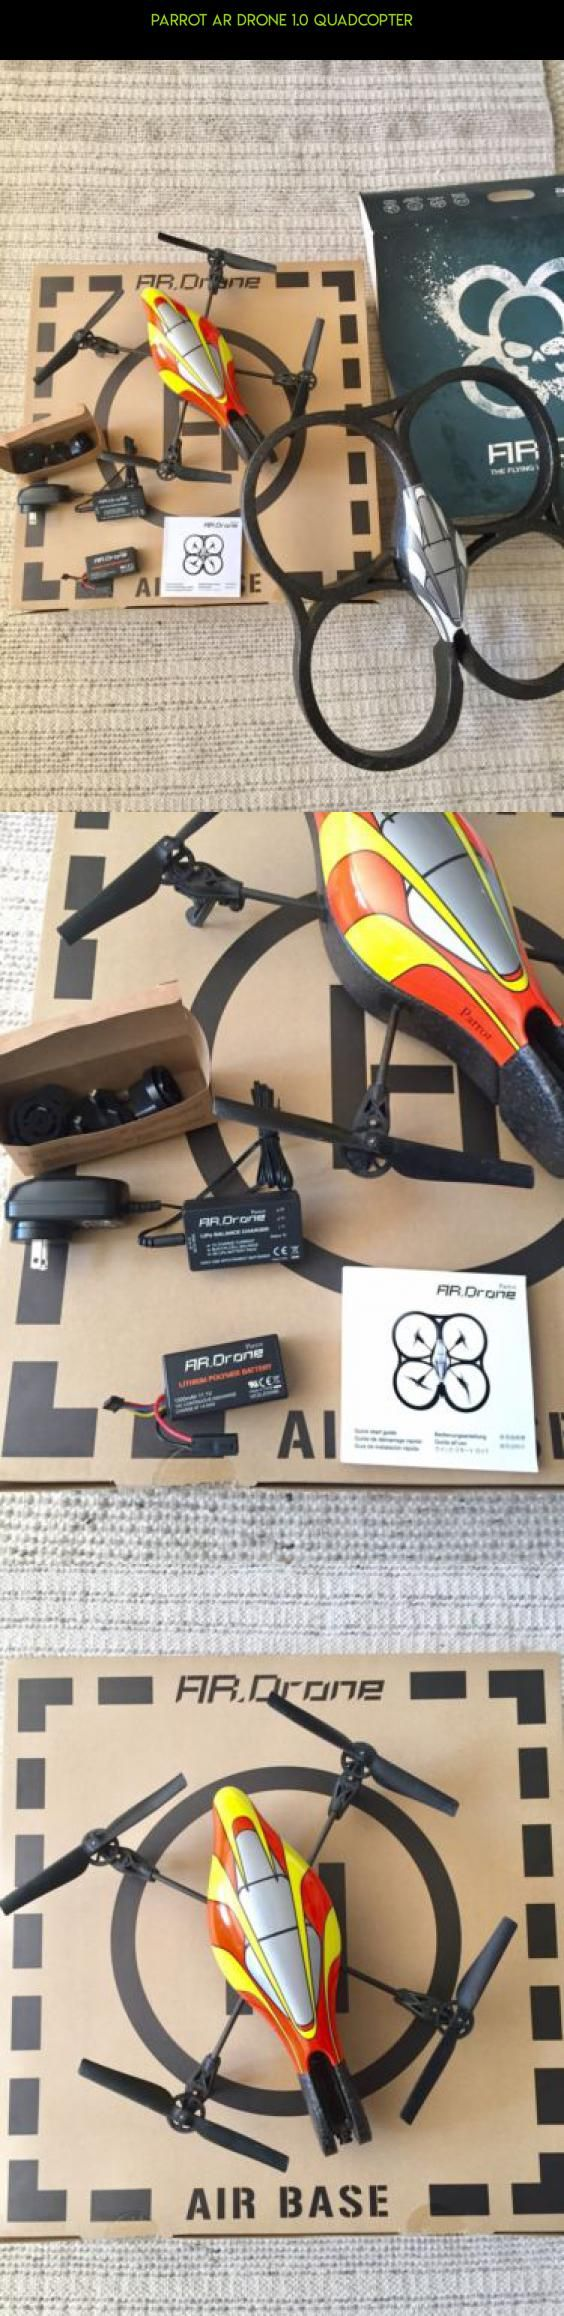 Parrot AR Drone 1.0 Quadcopter #camera #drone #kit #shopping #parts #fpv #gadgets #quad #products #plans #racing #parrot #copter #technology #tech